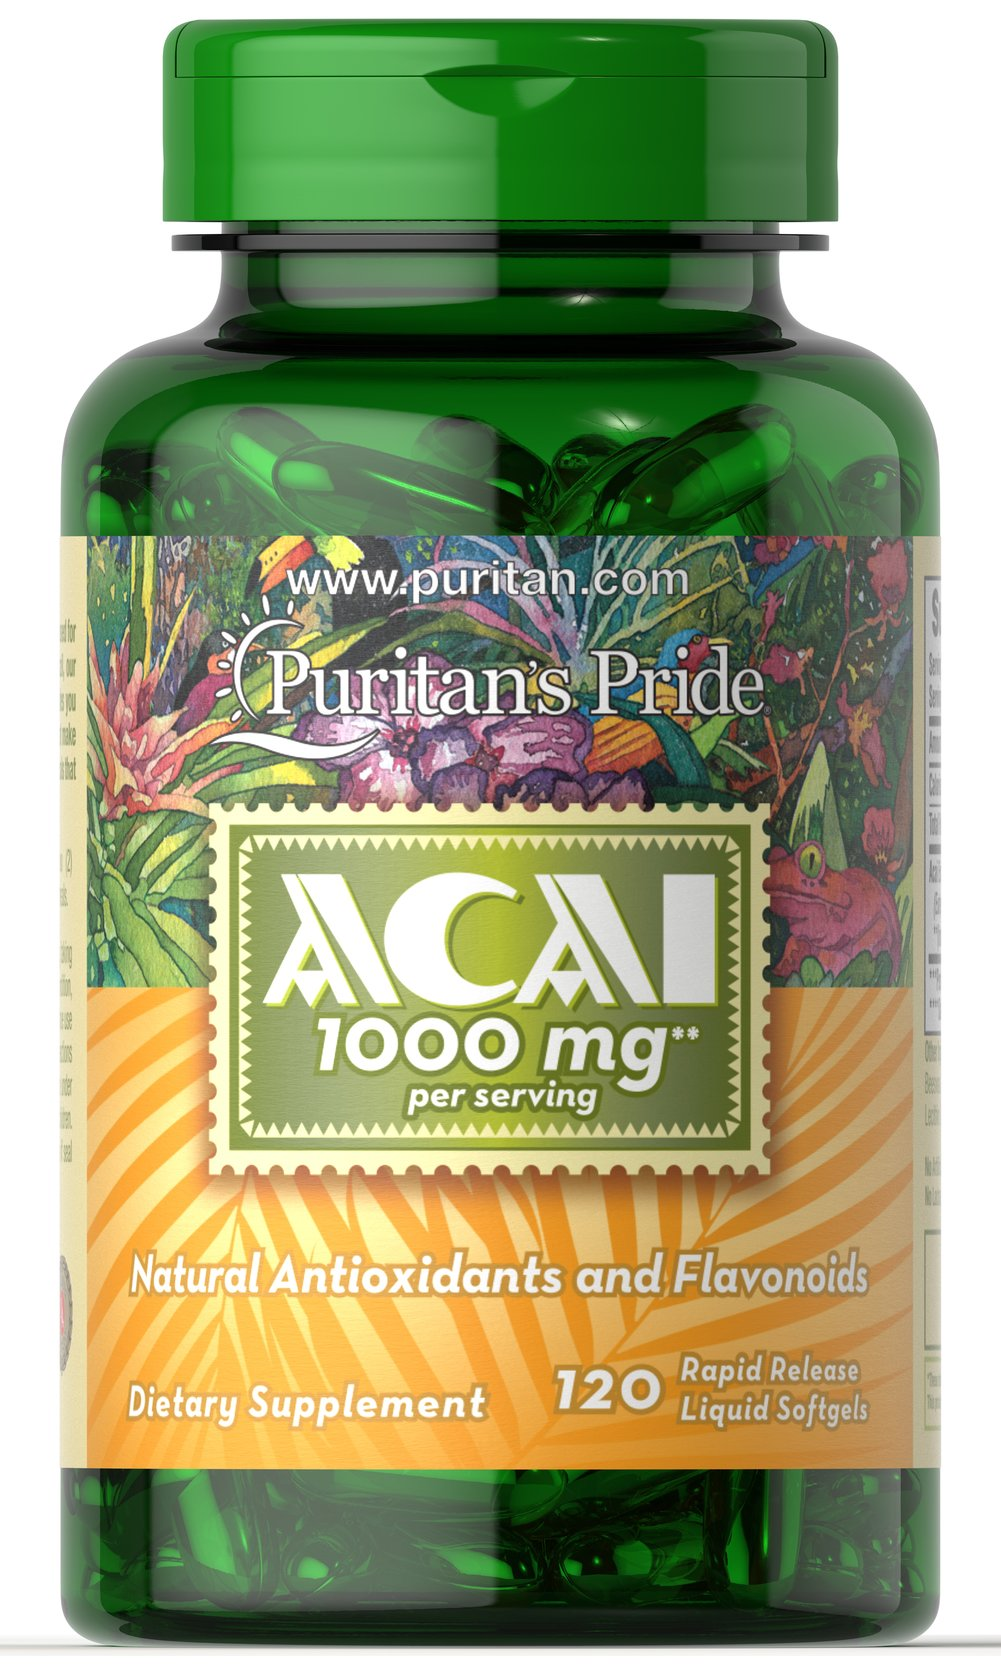 Acai 1000 mg Rapid-release liquid softgels <p></p>Contains 1000 mg Acai per serving (two softgels)<p></p>Contains natural flavonoids and antioxidants<p></p>Supports overall well-being**<p></p>Helps enrich the vitality of your body and soul**<p></p> 120 Softgels 1000 mg $19.59